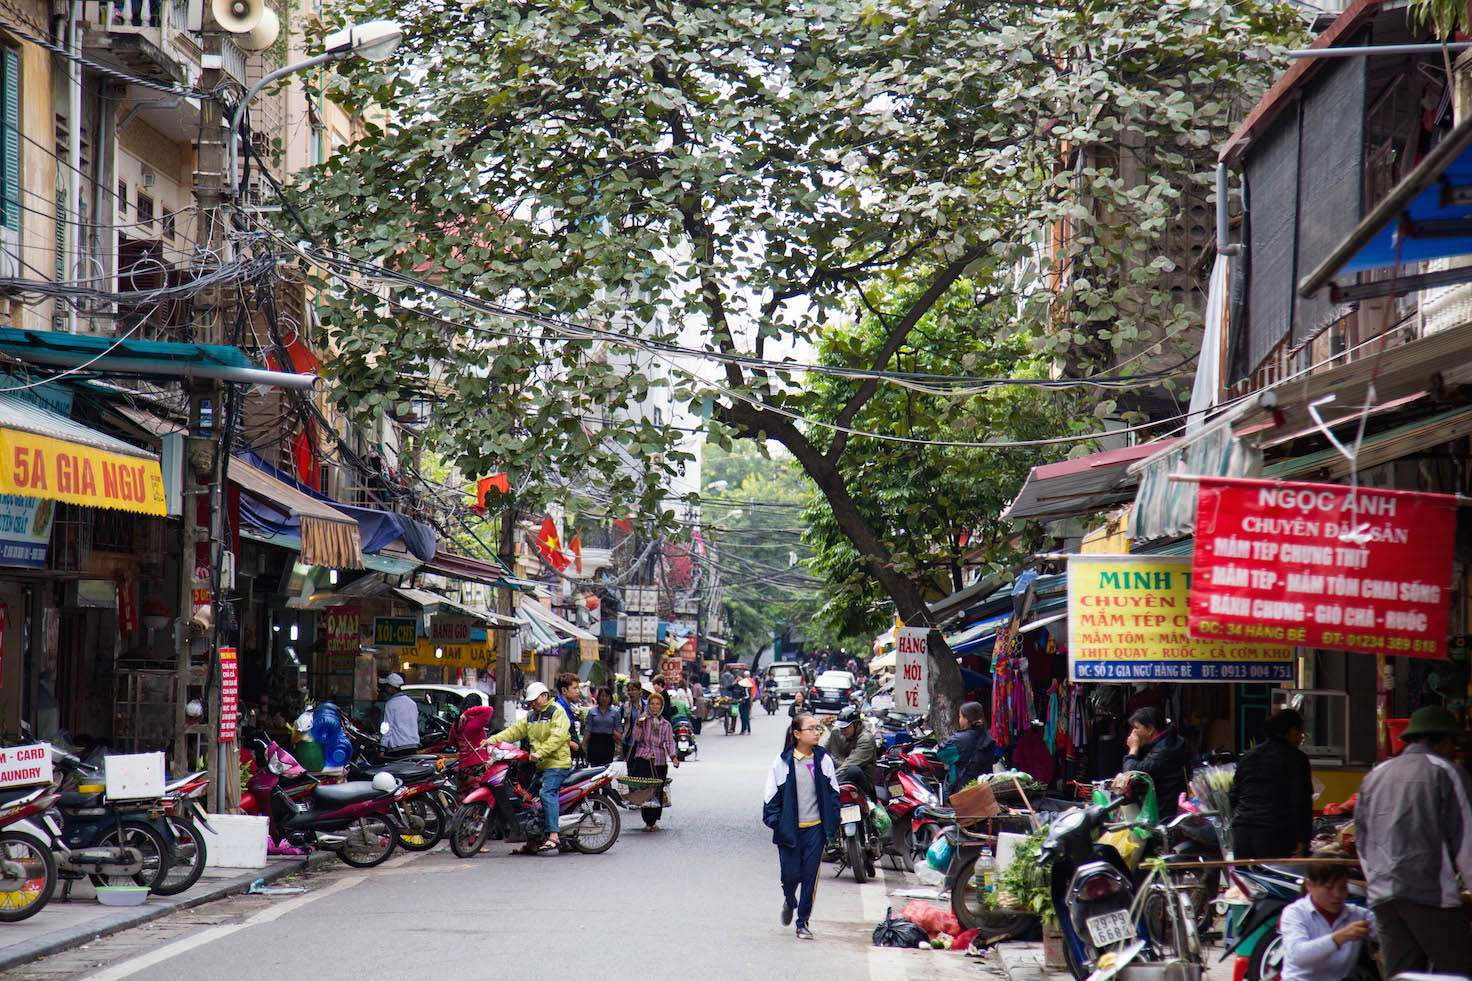 Hanoi-moments of yugen-old quarter neighborhood